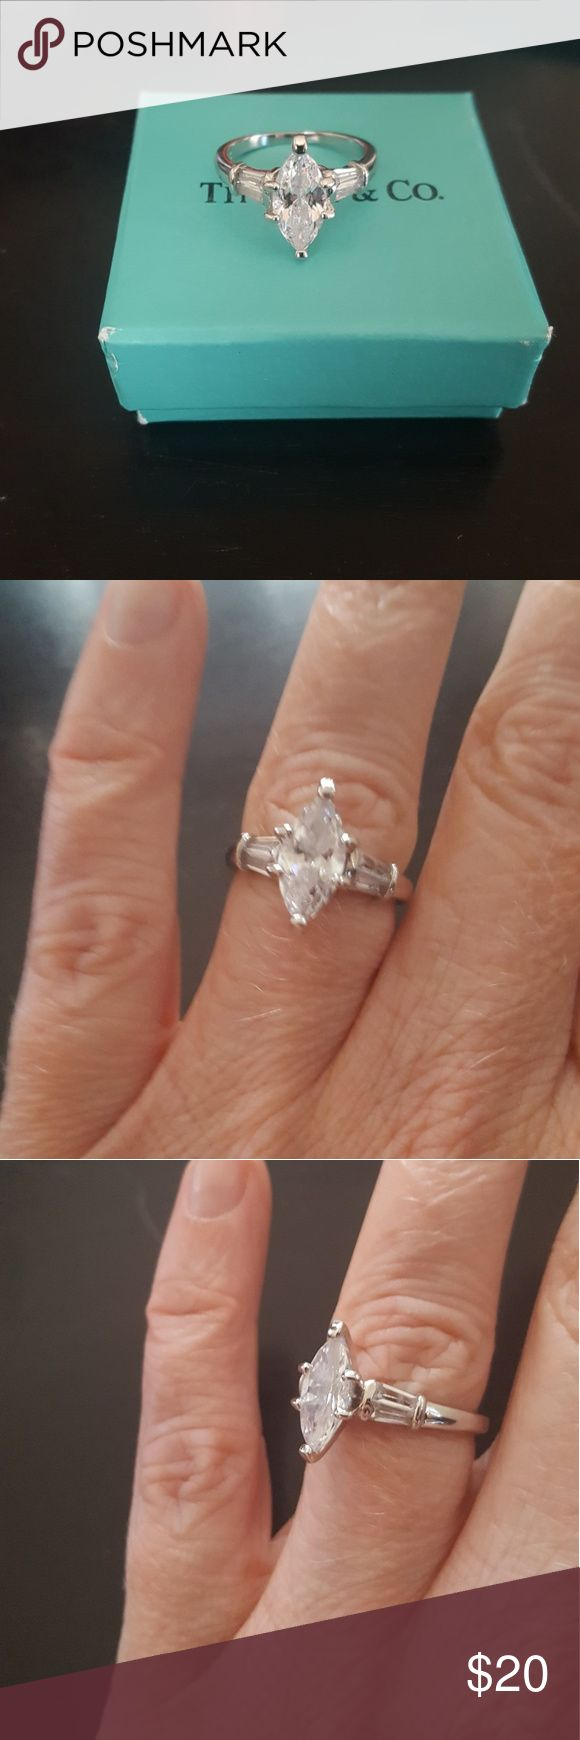 Engagement Marquis 'Diamond' style ring Beautiful engagement style ring. Marques shaped stone with baguette sides. NOT 925. Jewelry Rings